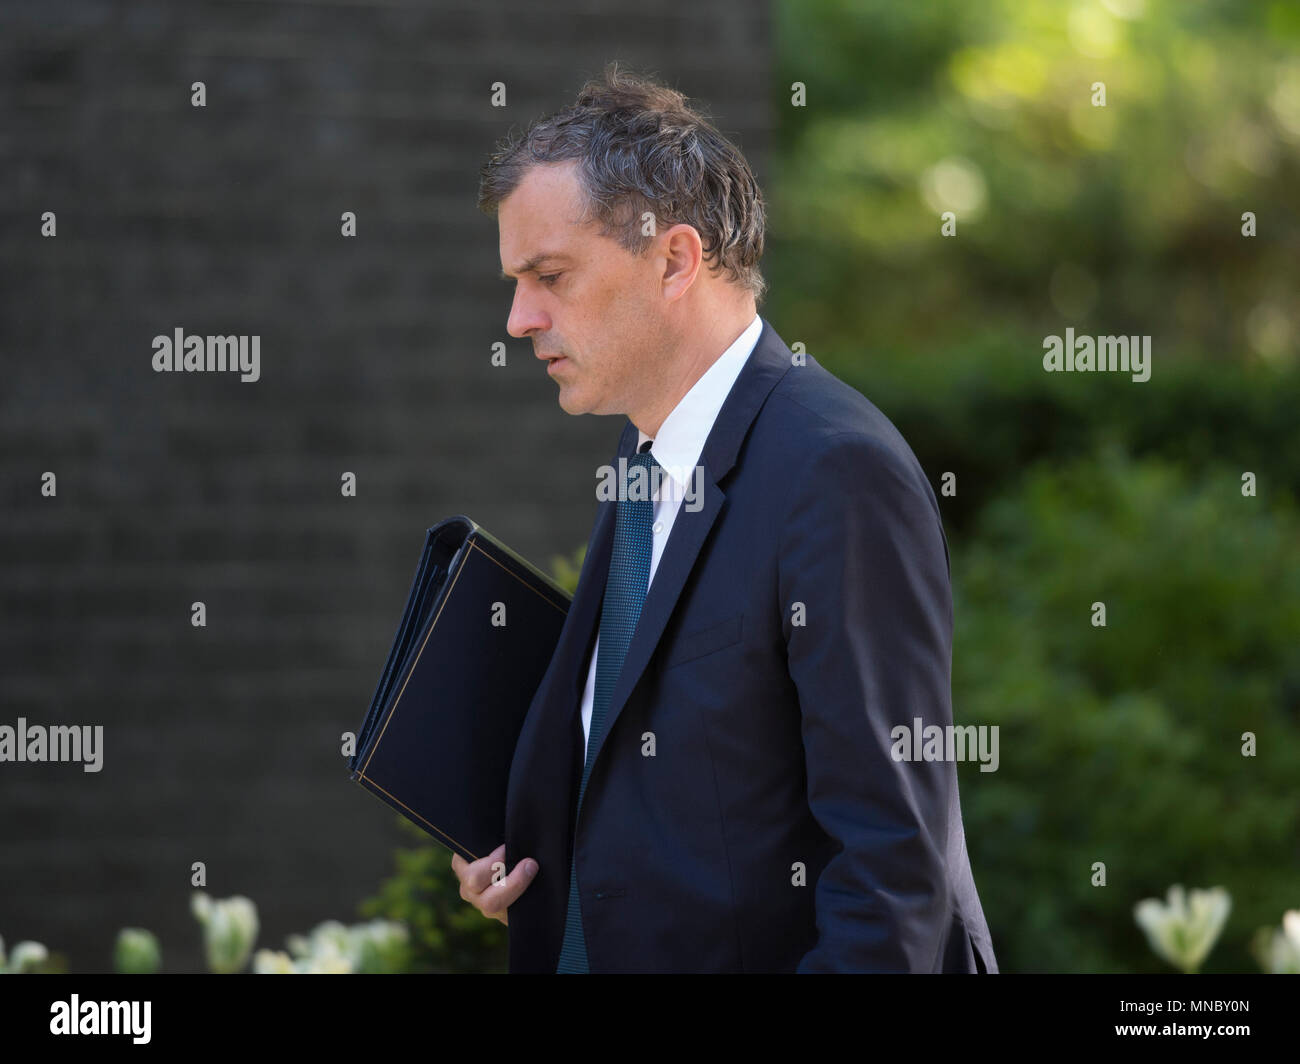 London, UK. 15 May 2018. Julian Smith, Chief Whip in Downing Street for weekly Cabinet meeting. - Stock Image